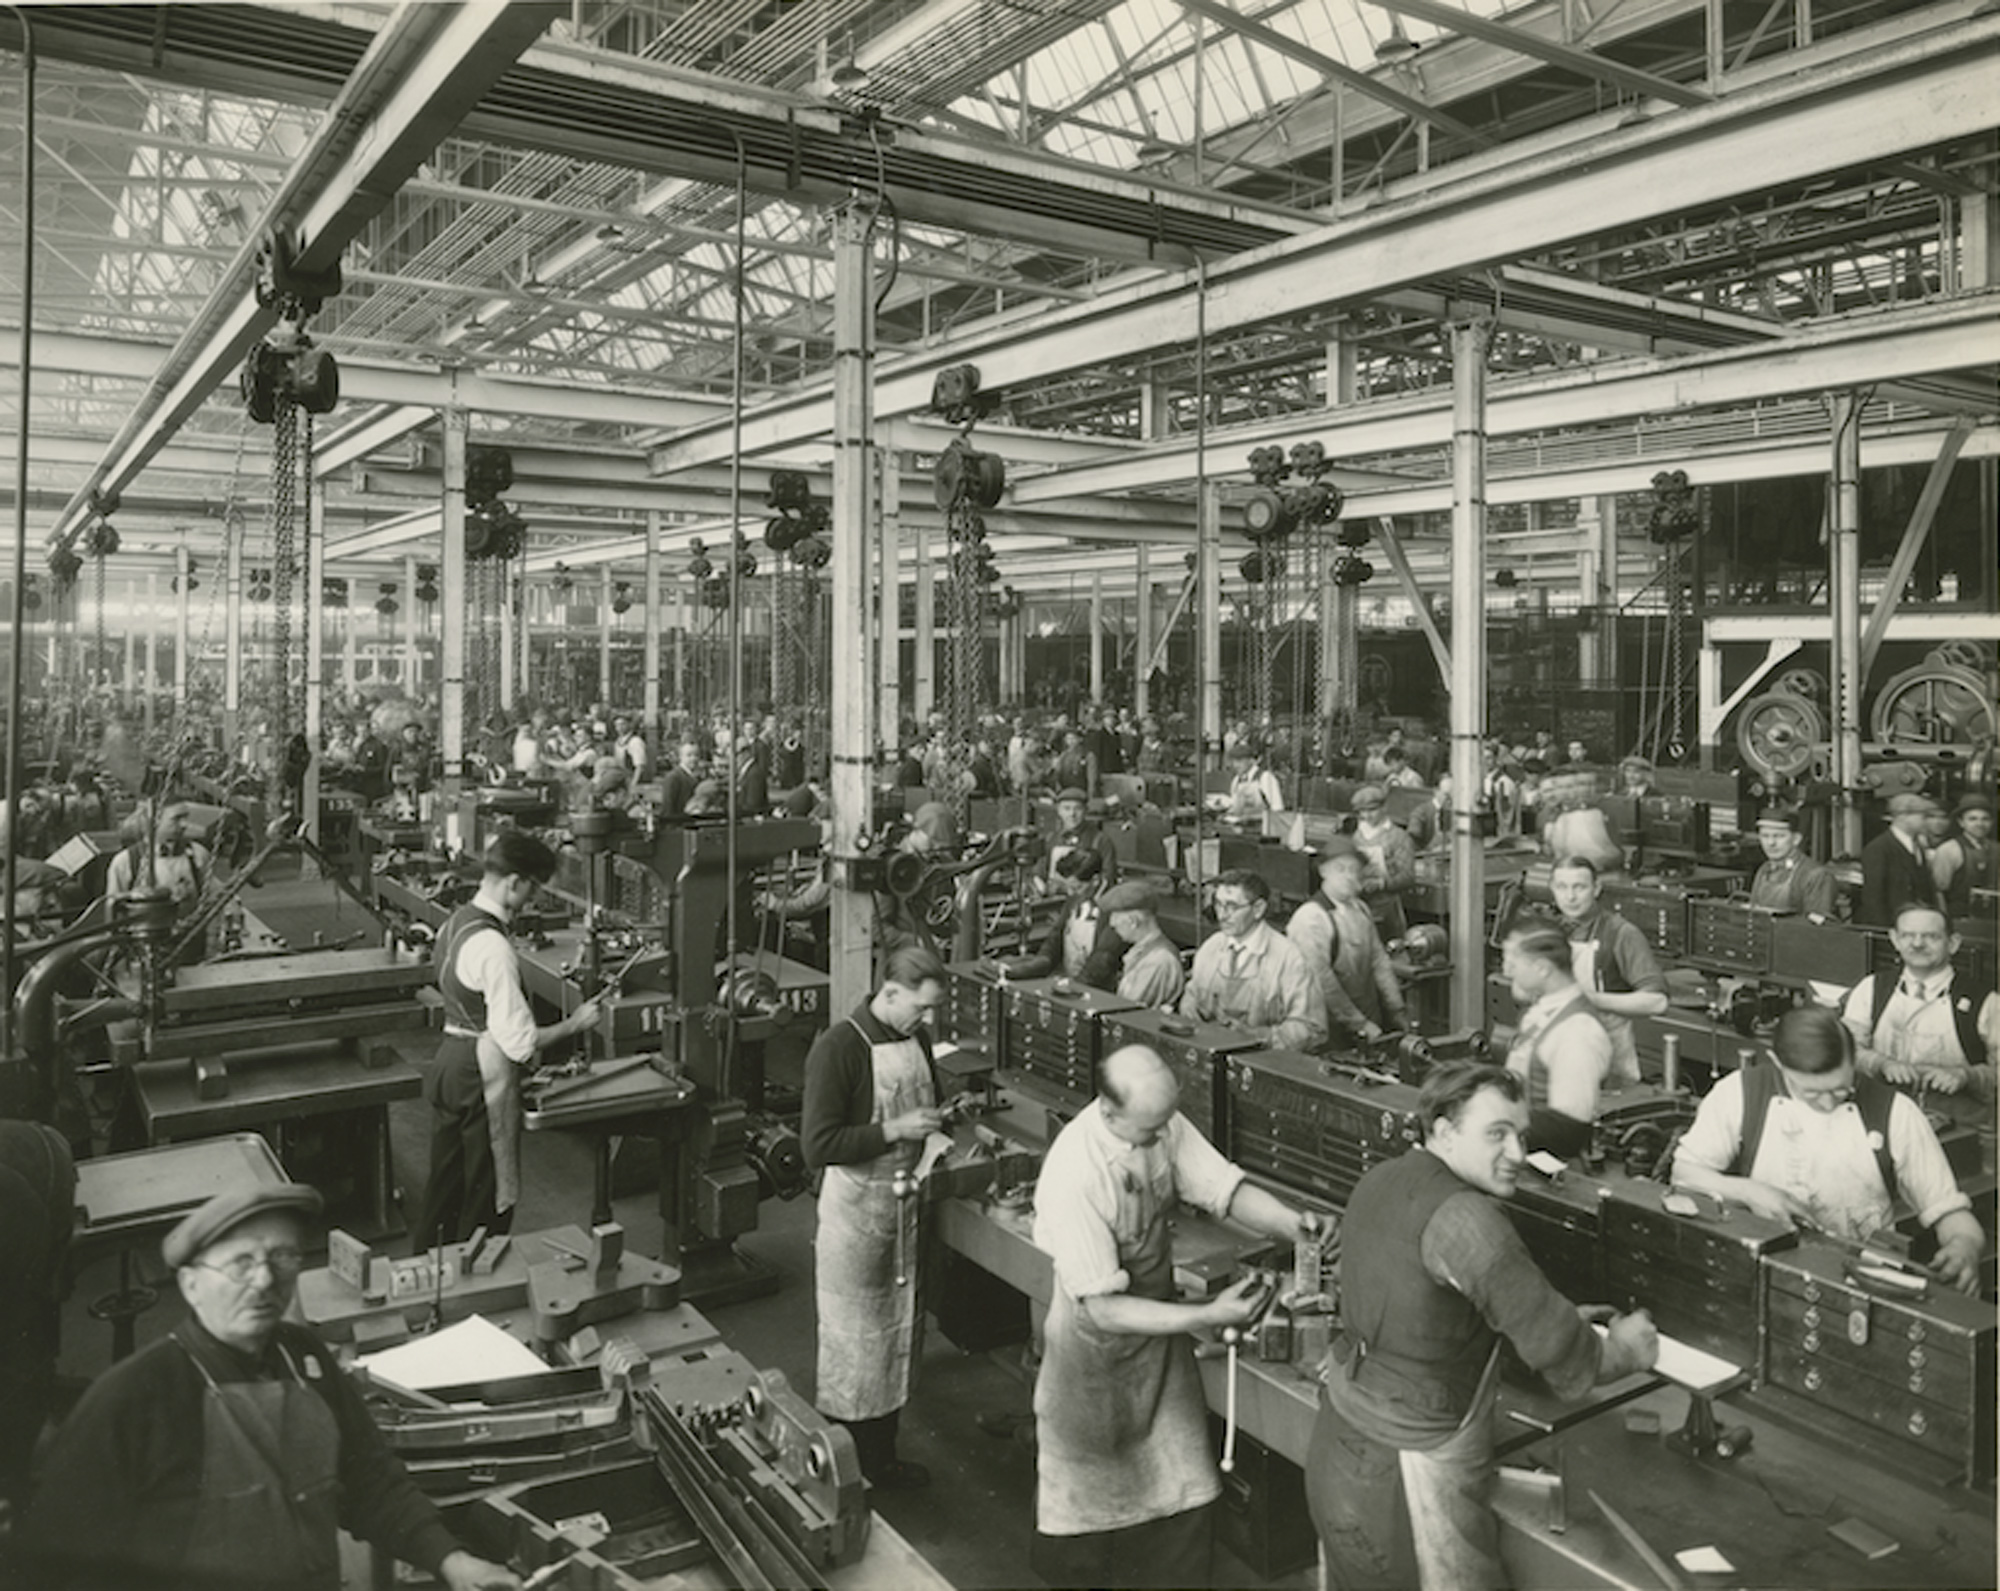 Despite The Success That The Assembly Line Brought To The Company, Many  Skilled Workers Found The Work Monotonous And Exhausting. Pictured Here Are  Workers ...